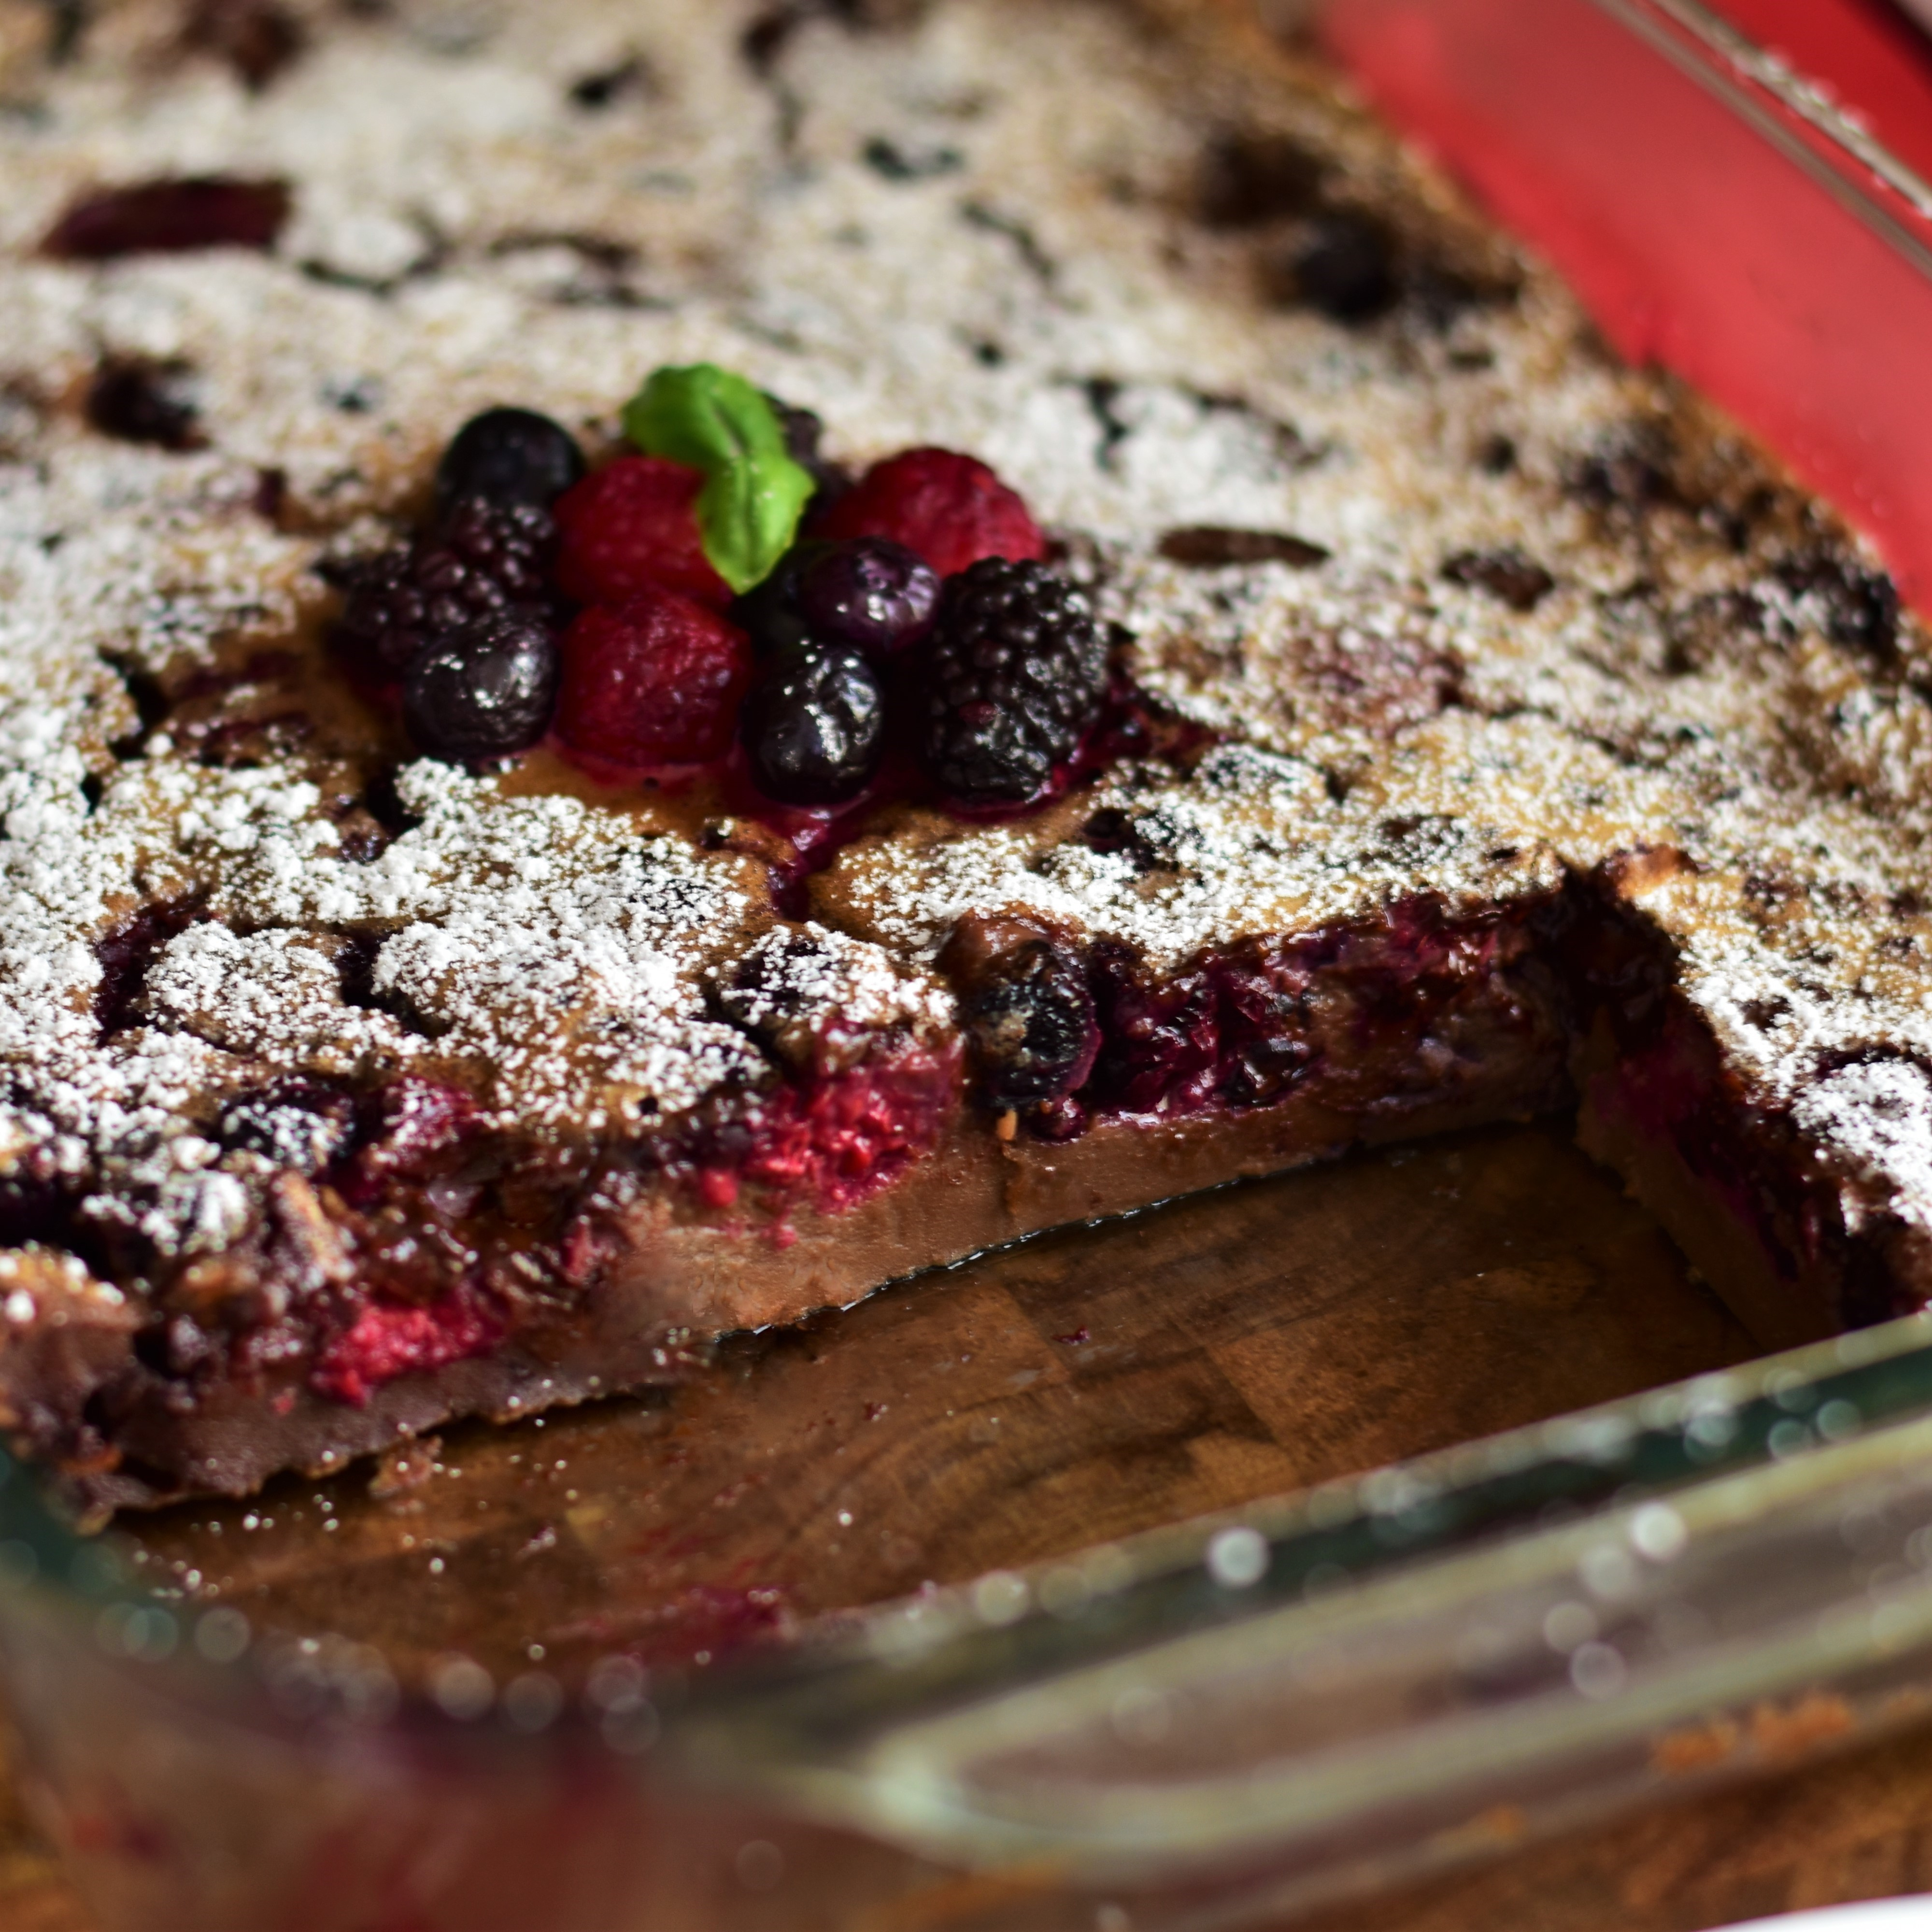 Chocolate-Mixed Berry Baked Custard